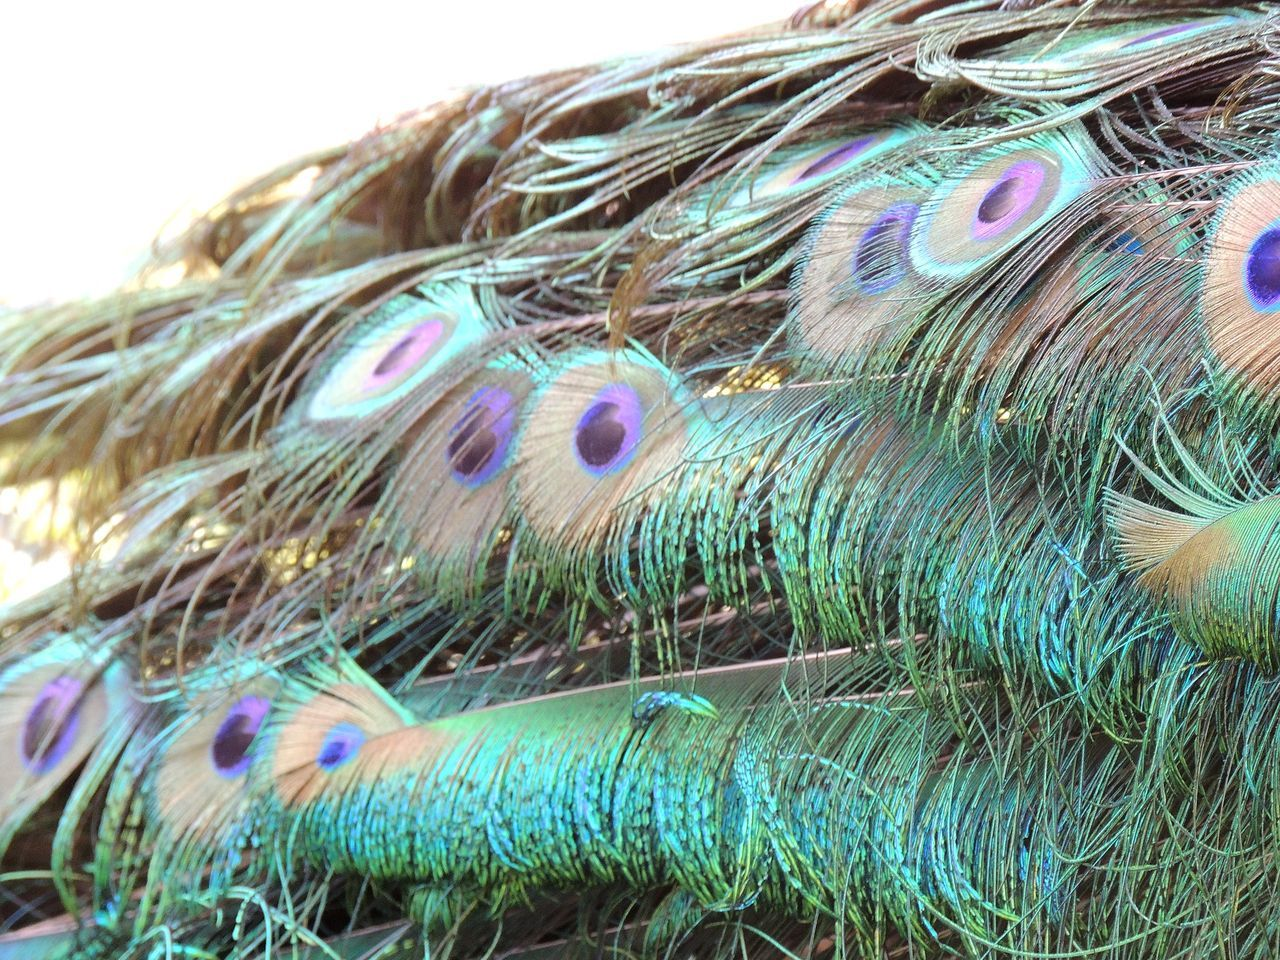 Beauty Bird Photography Blue Close-up Colorful Delicate Beauty Detail Feather  Focus On Foreground Multi Colored Natural Pattern Natural World Peacock Feathers Selective Focus Turquoise Colour